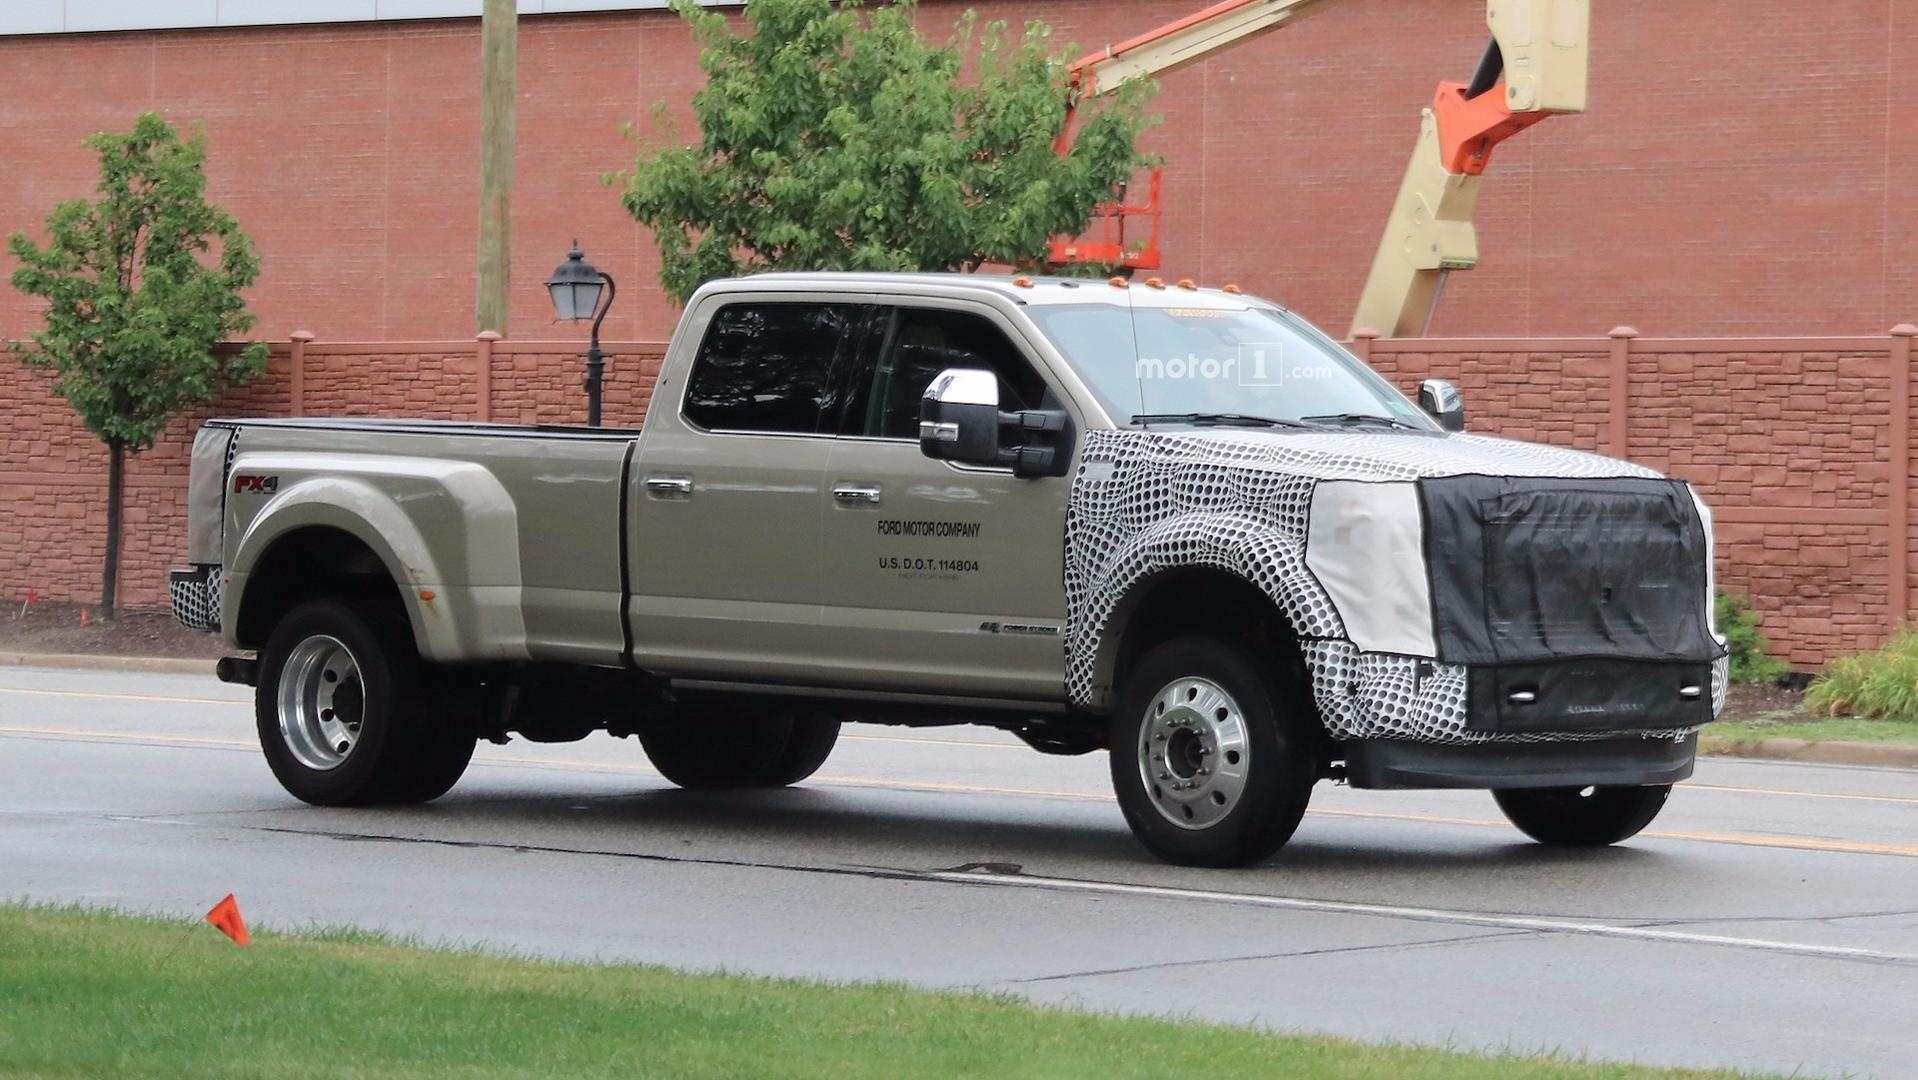 98 The Best 2019 Ford F250 Release Date Review Specs And Release Date Style by Best 2019 Ford F250 Release Date Review Specs And Release Date